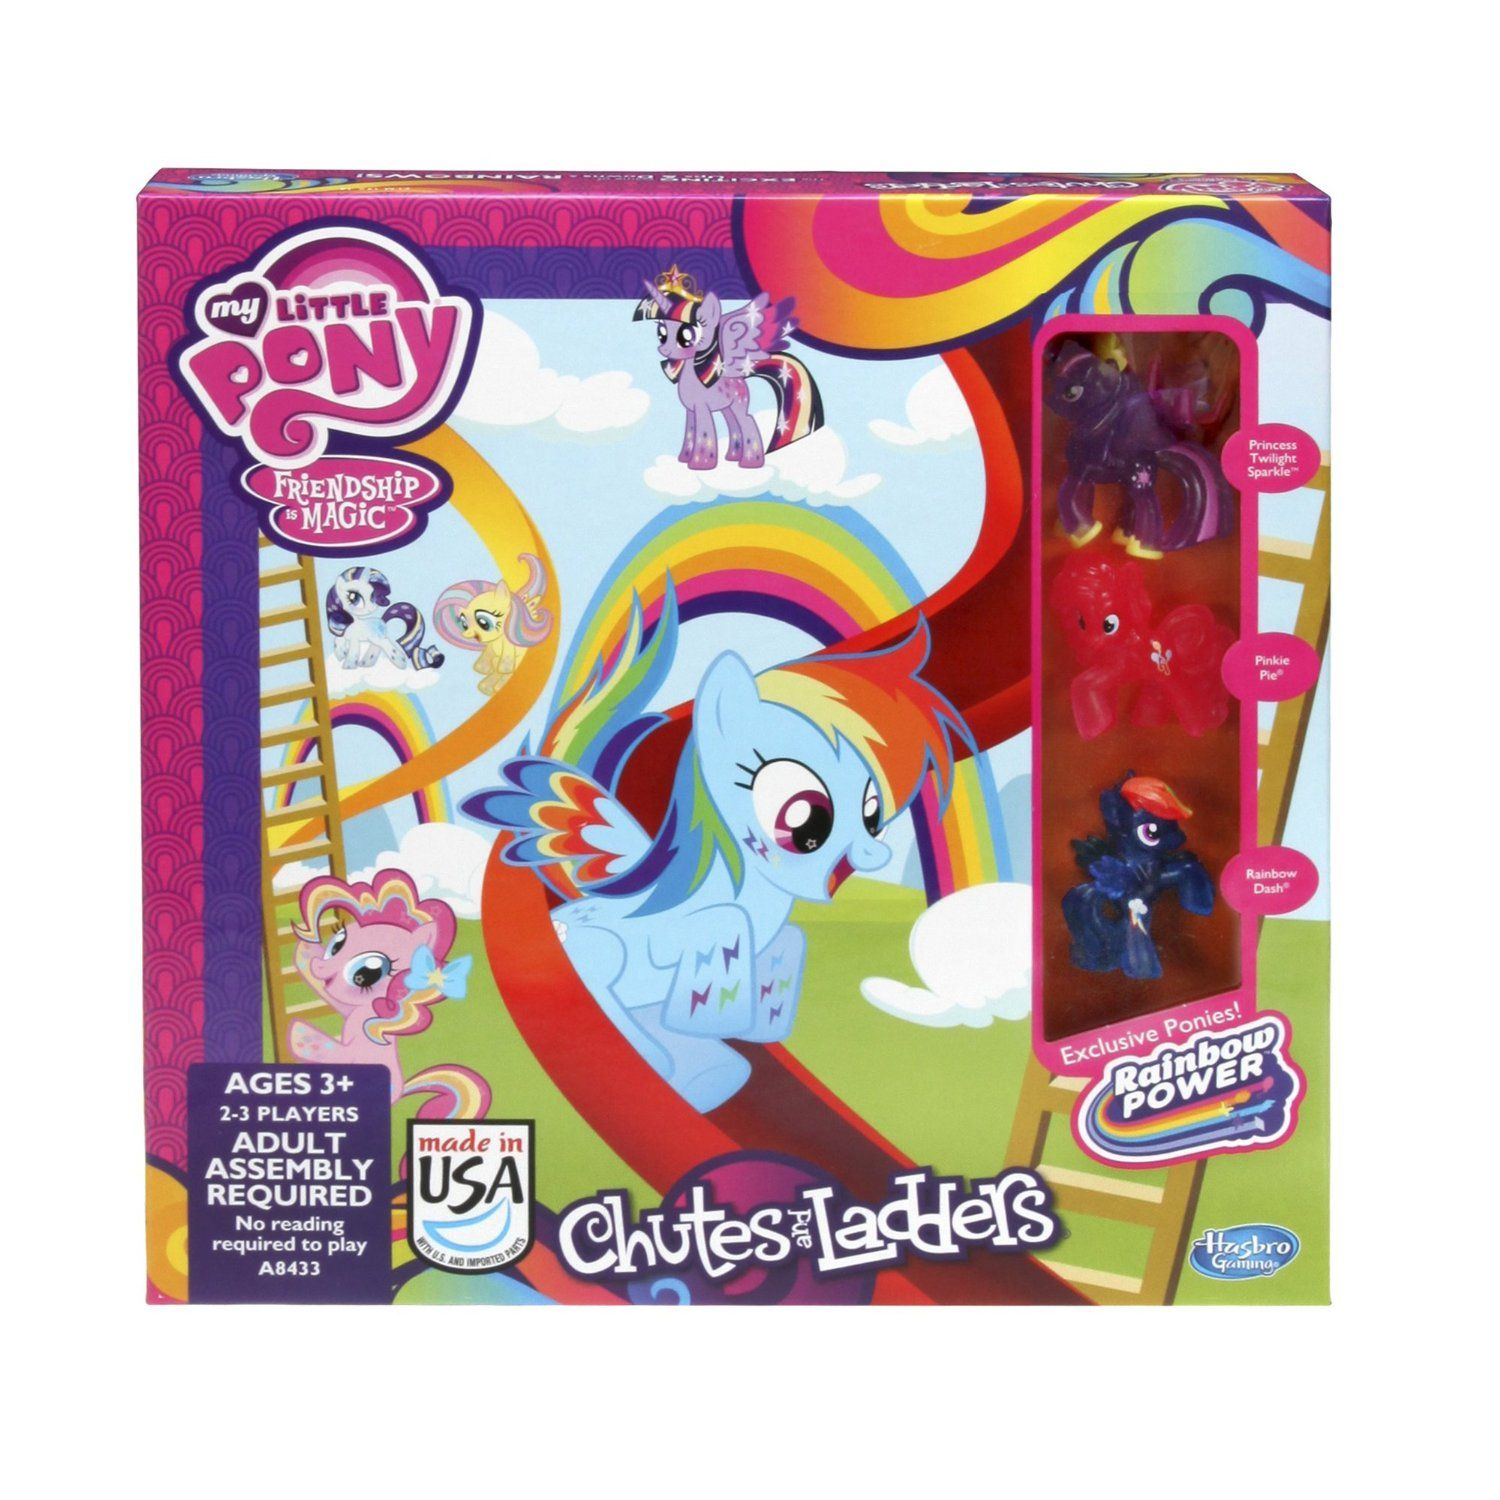 Calling all My Little Pony fans! Amazon has this fun My Little Pony Chutes and Ladders Game for only $9.88 (Reg. $16.99)!  #ExtremeCouponing #Coupons #Couponing  Visit us at http://www.thecouponingcouple.com for more great posts!